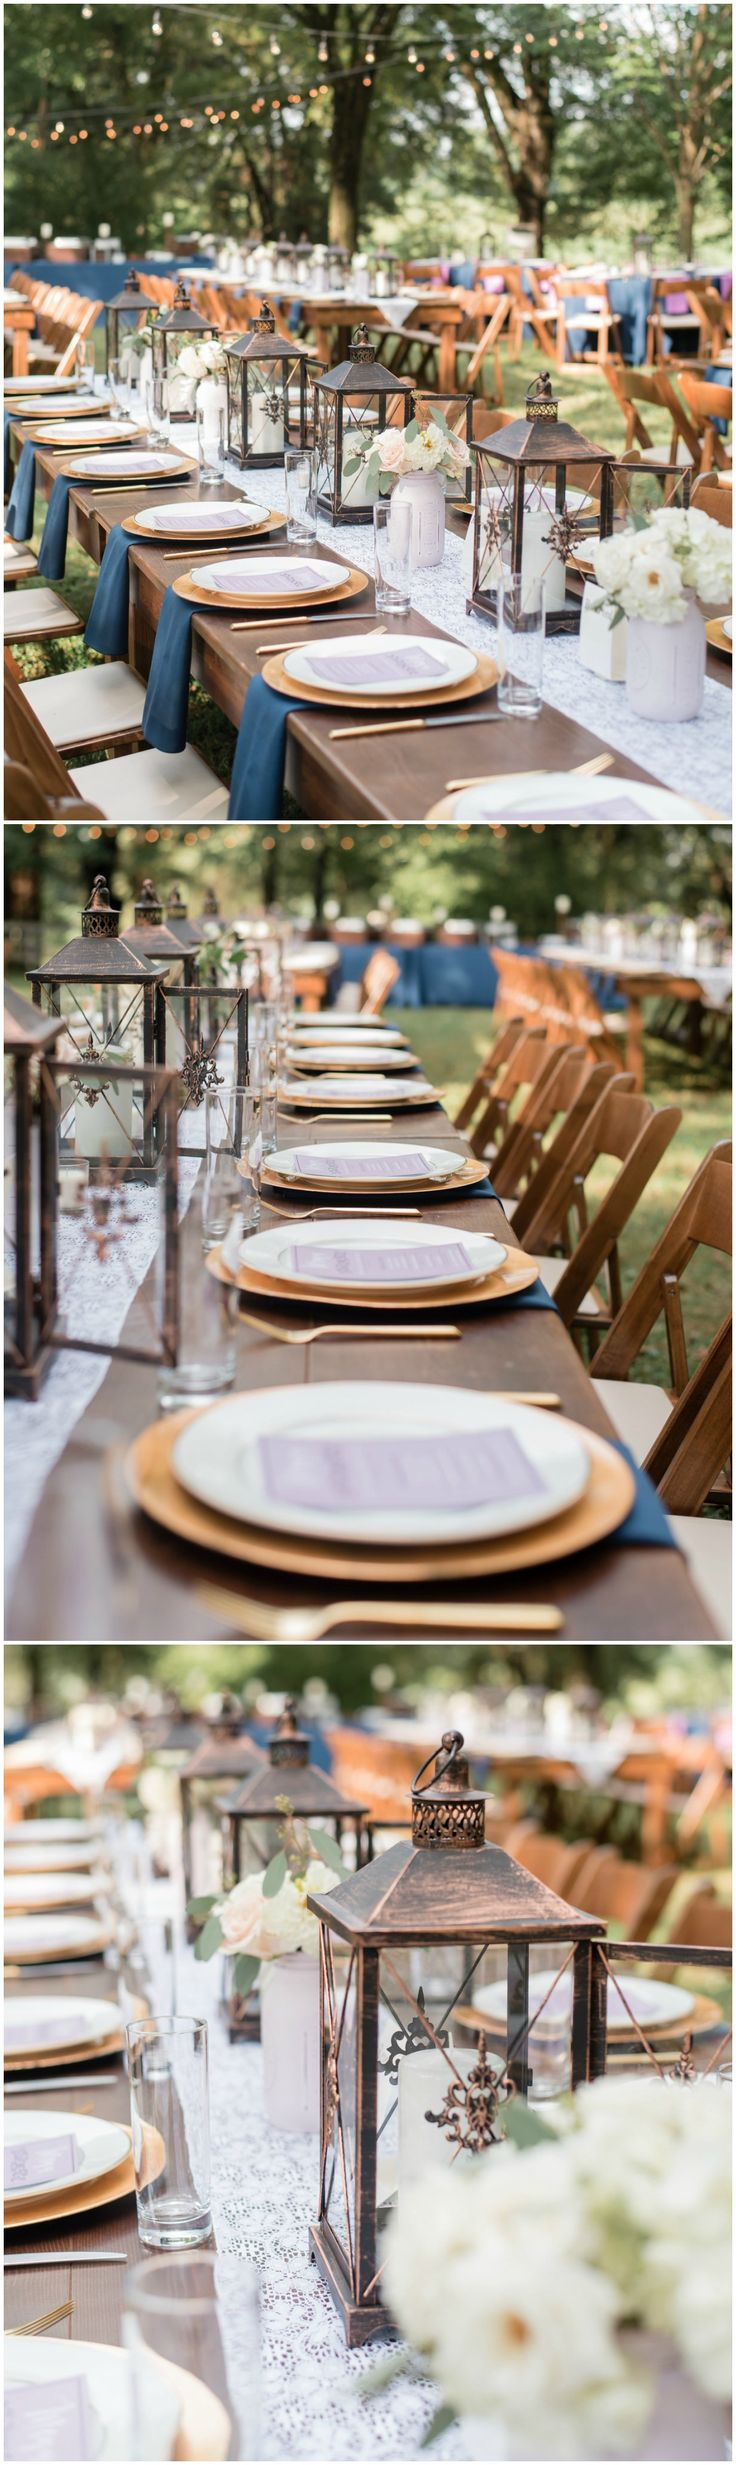 Outdoor wedding reception, copper lanterns, white floral centerpieces, draped lights, navy blue napkins, white lace table runners, long wooden tables // Melissa Desjardins Photography